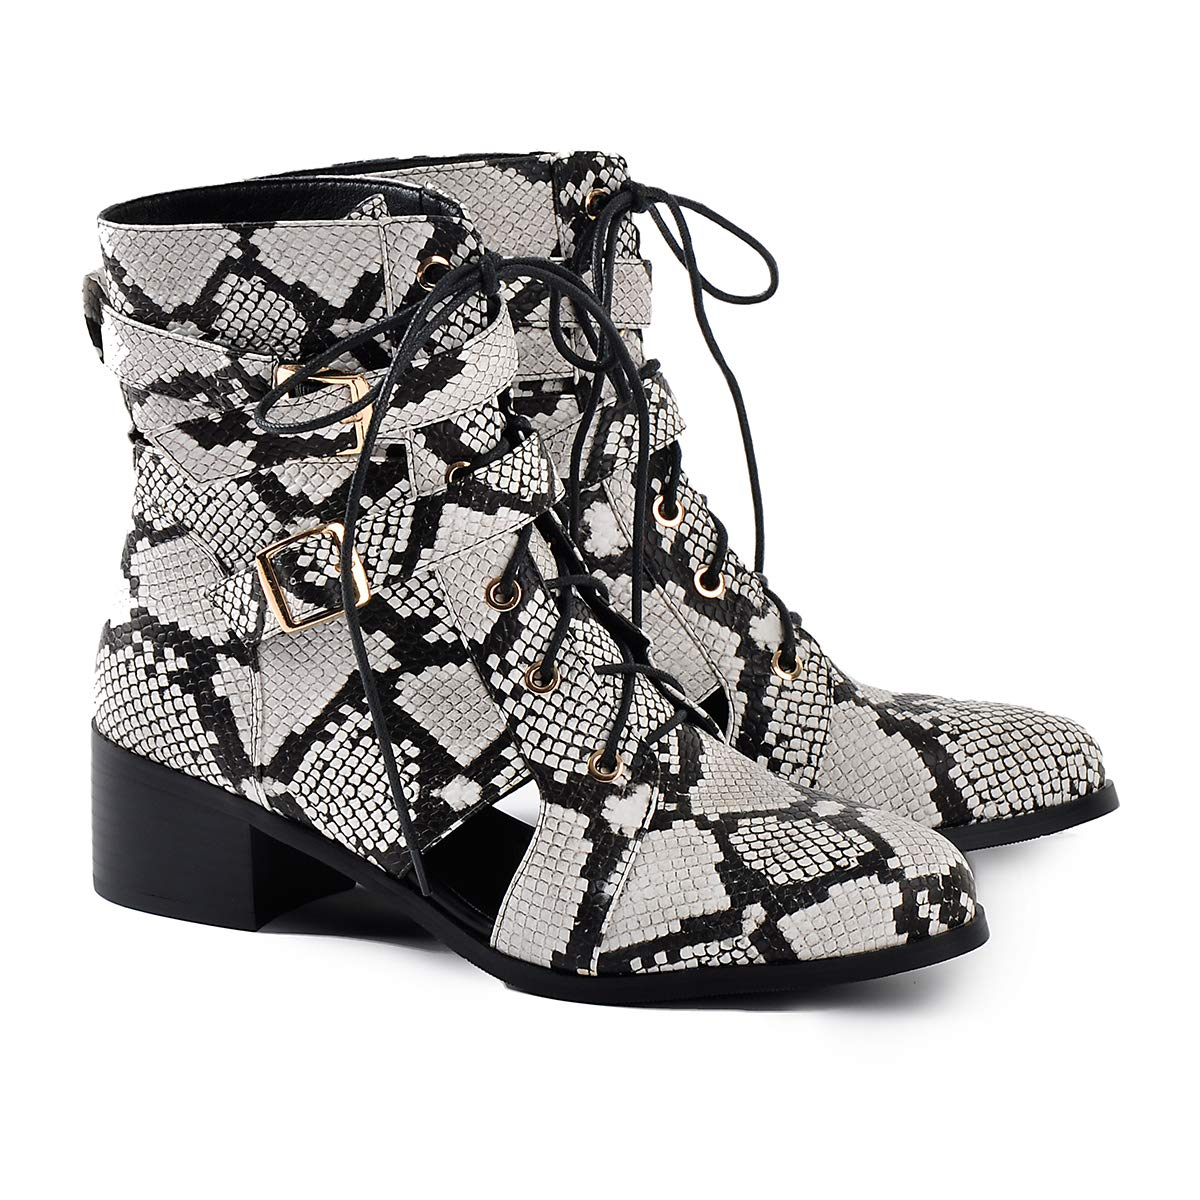 Onlymaker Frauen Snake Print Stiefel Ankle B Stiefel 2 Schnallen Schnürung Schnür Stiefel Bestickt Snake B Ankle adc191